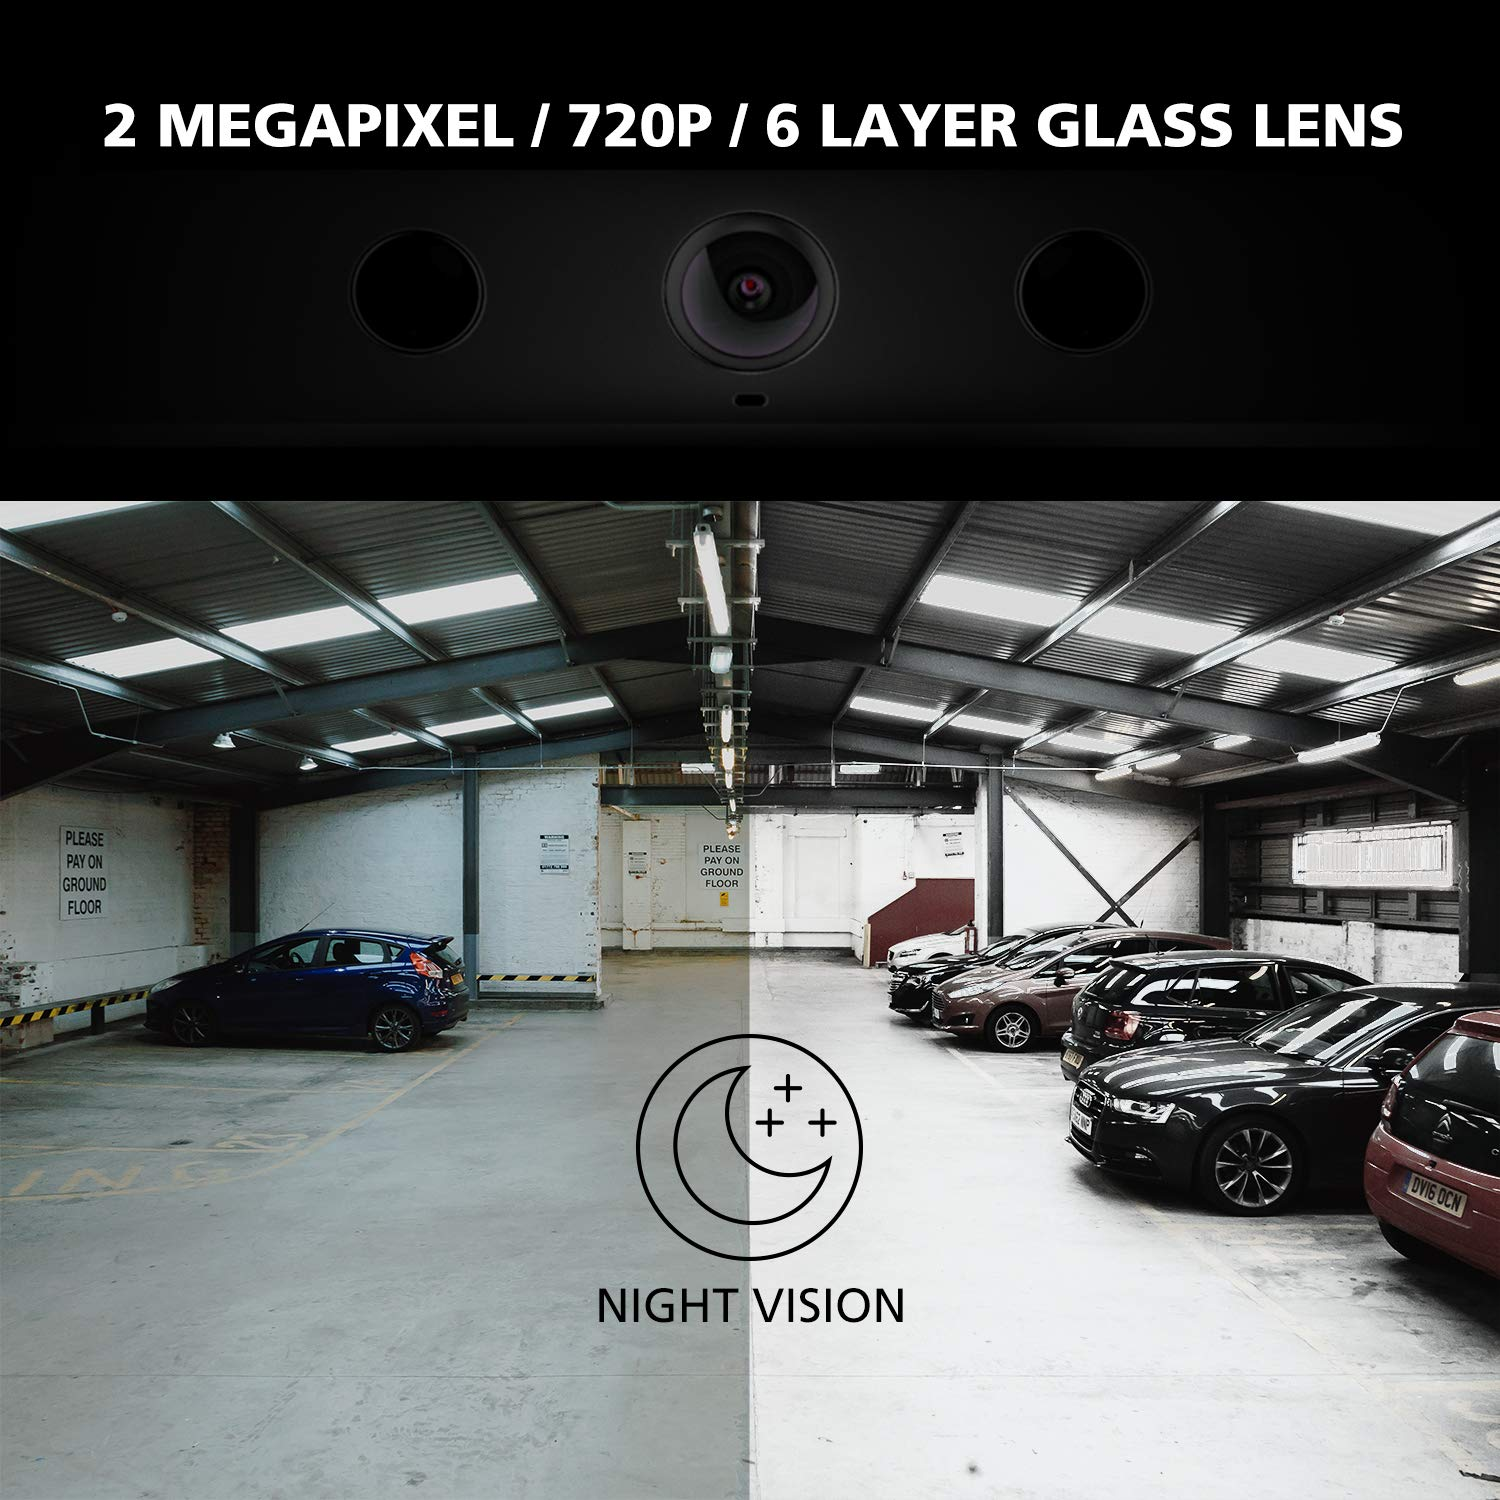 IP67 Waterproof Easy Installation with No Wiring or Drilling Needed ZURCBKUAL-A nonda ZUS Smart Backup Camera Real Wireless Rear View Camera with 170 Degrees Wide Angle and Rechargeable Battery